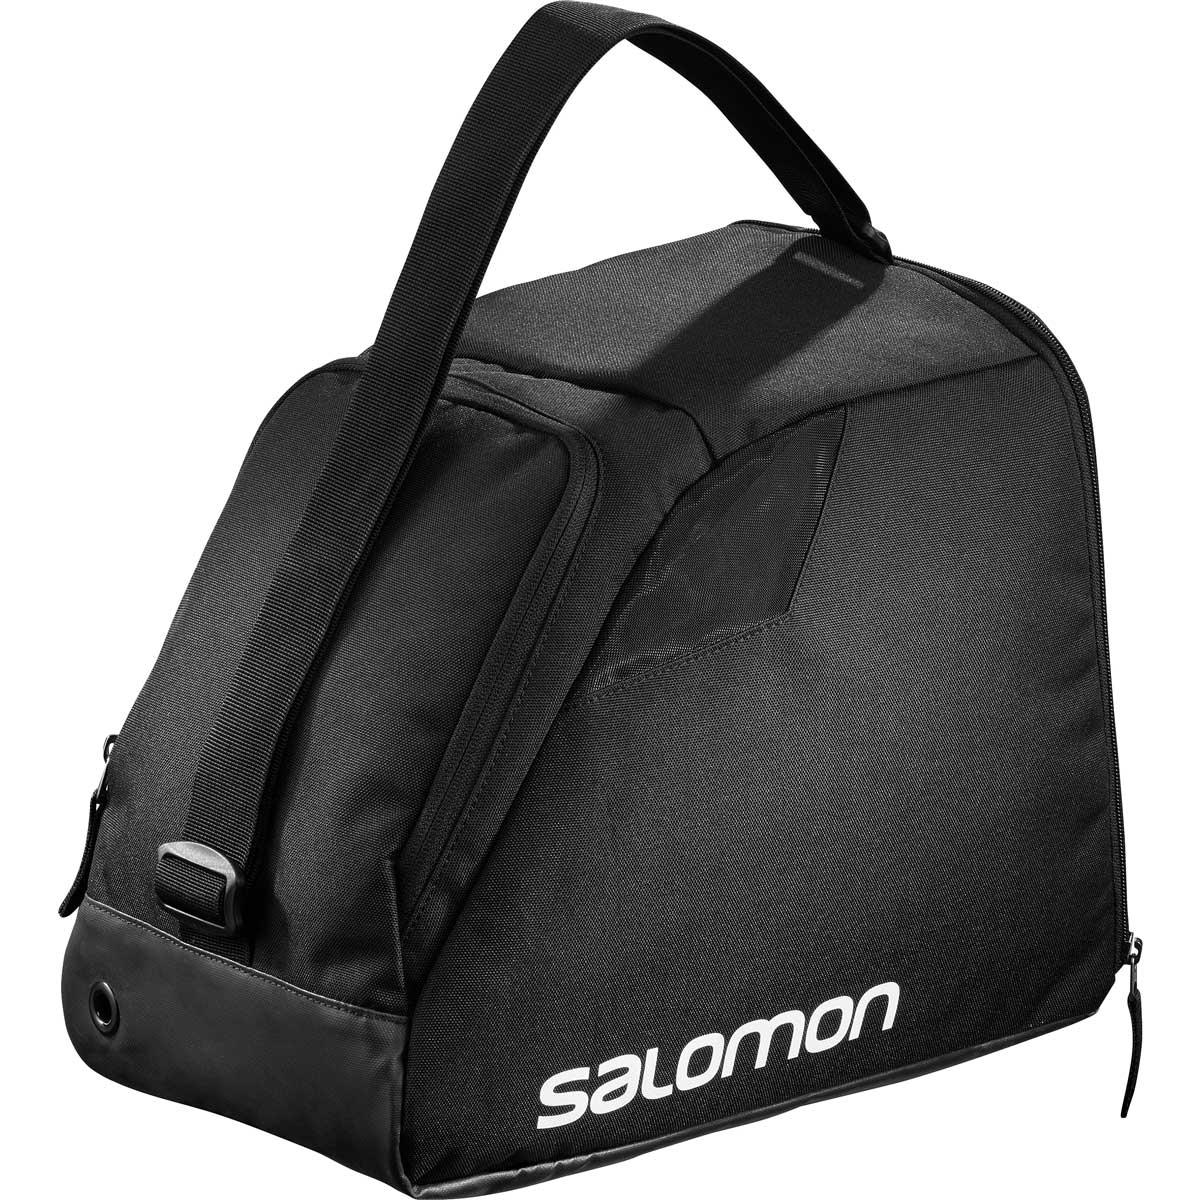 Salomon Nordic Gear Bag in Black